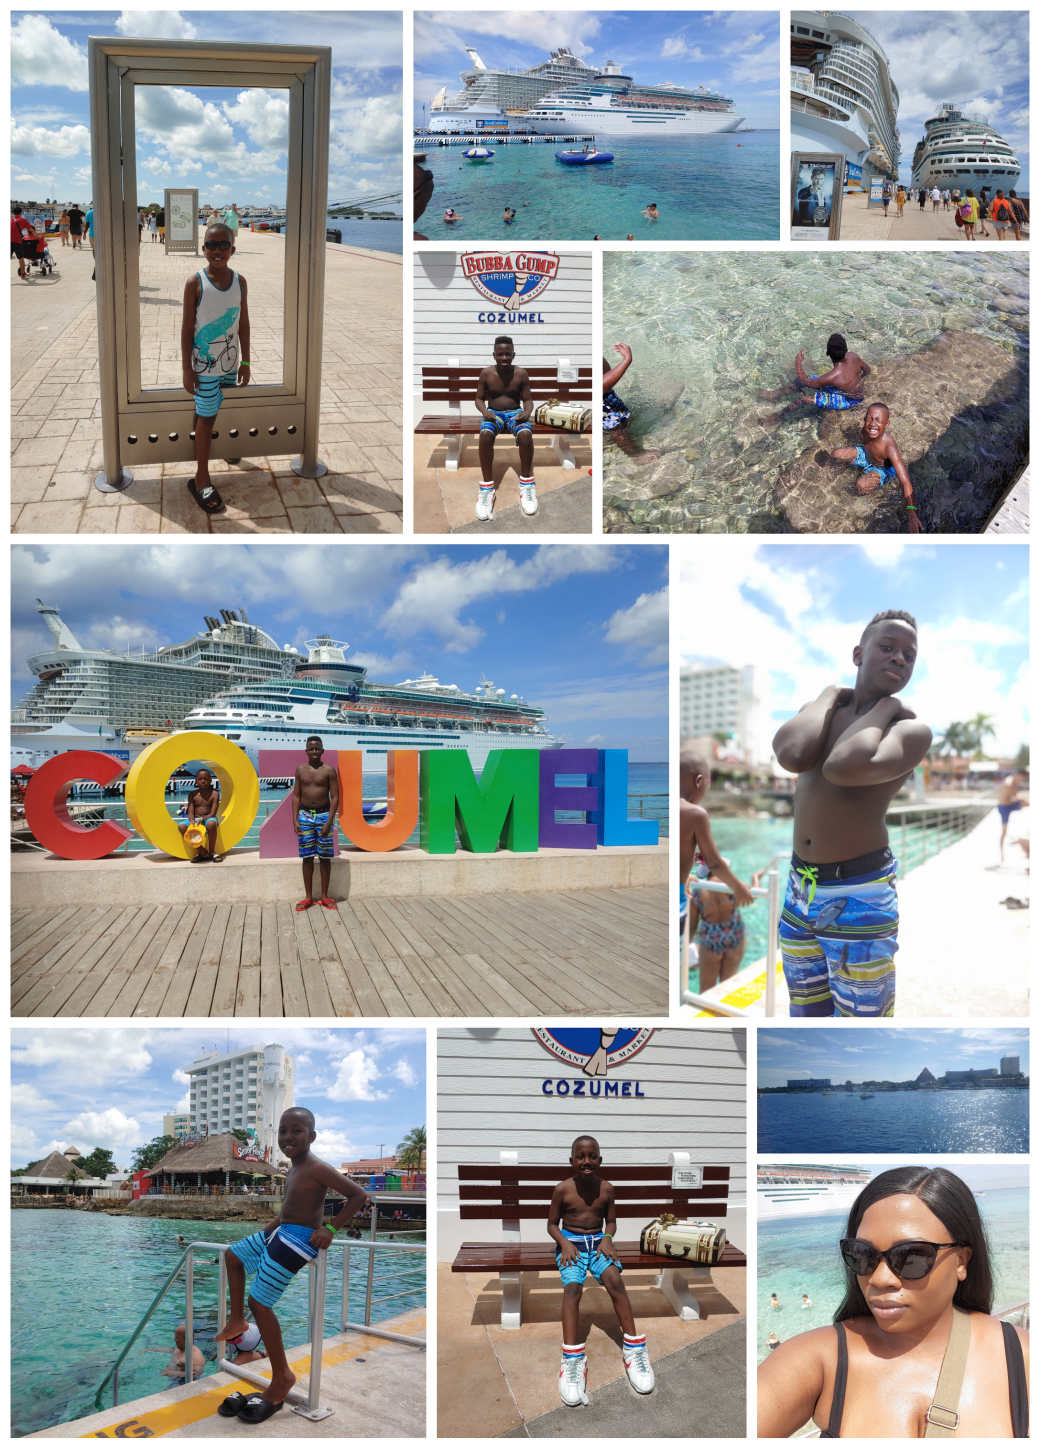 RondaWrites.net | Fun at the Royal Caribbean Cruise Port - Cozumel, MX